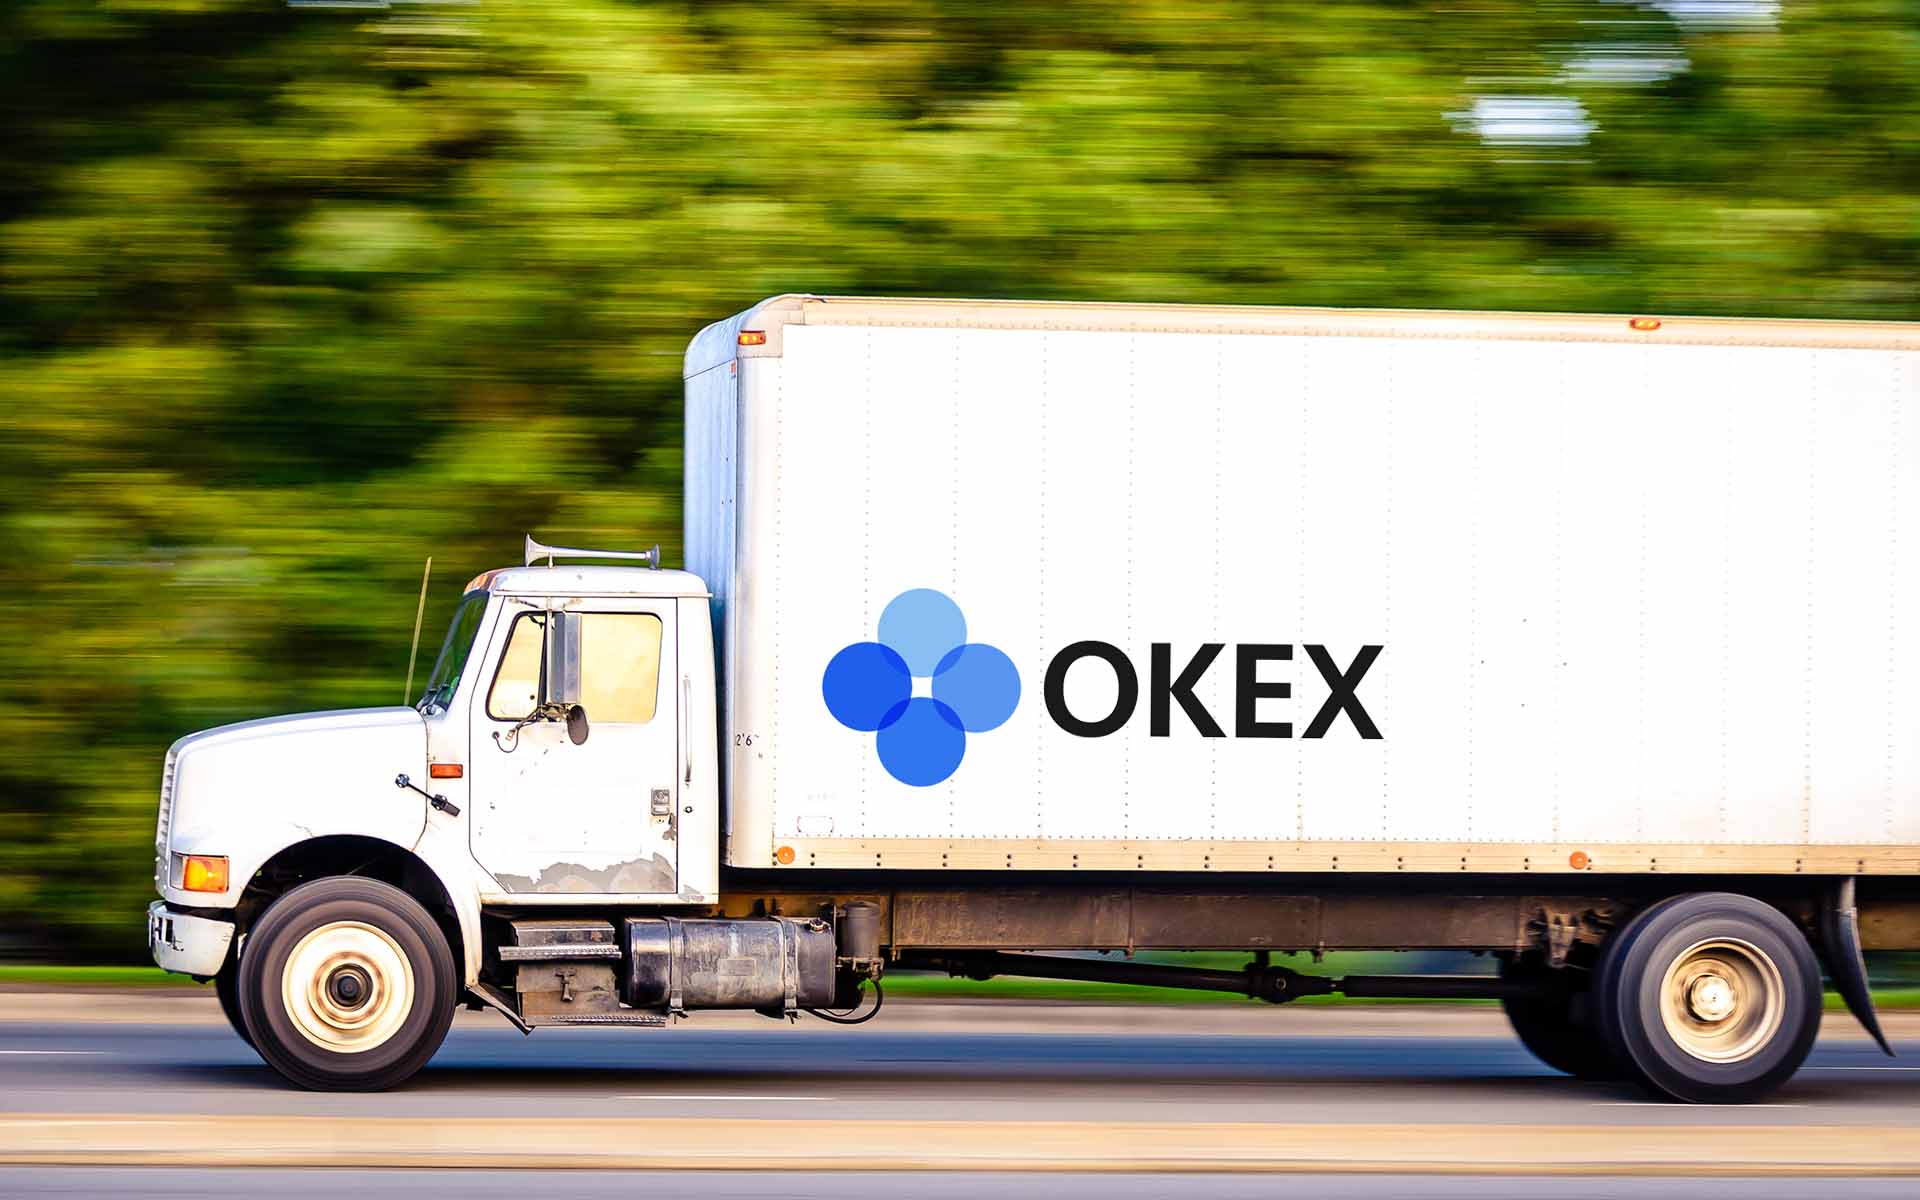 Hong-Kong Based Exchange OKEx Plans to Move to Malta